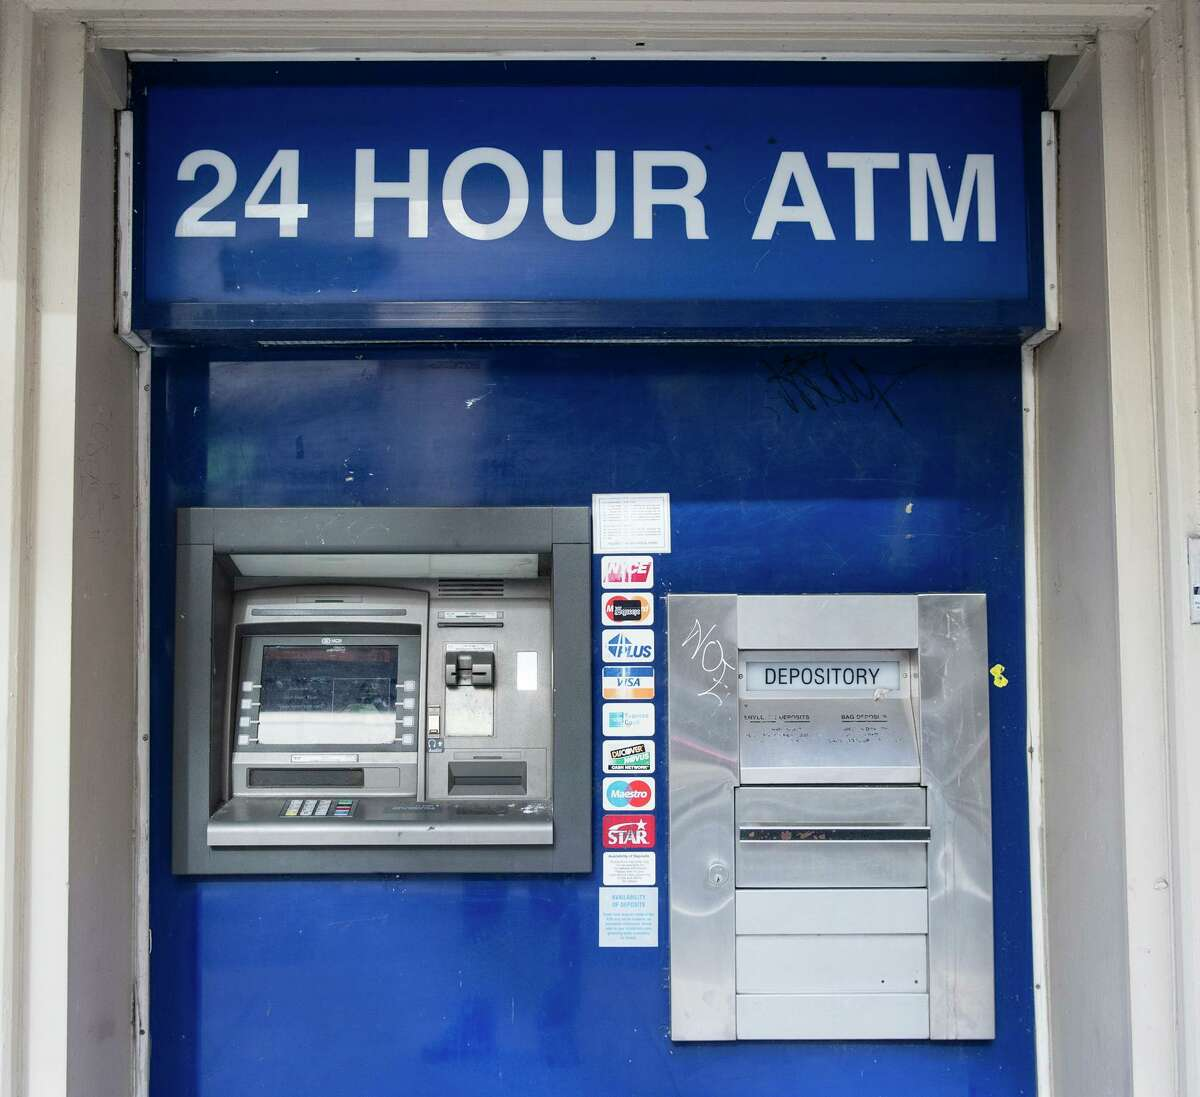 Some banks have permanently closed branches as mobile banking and self-service option use accelerated, but some institutions expect there will always be a need for in-person business.